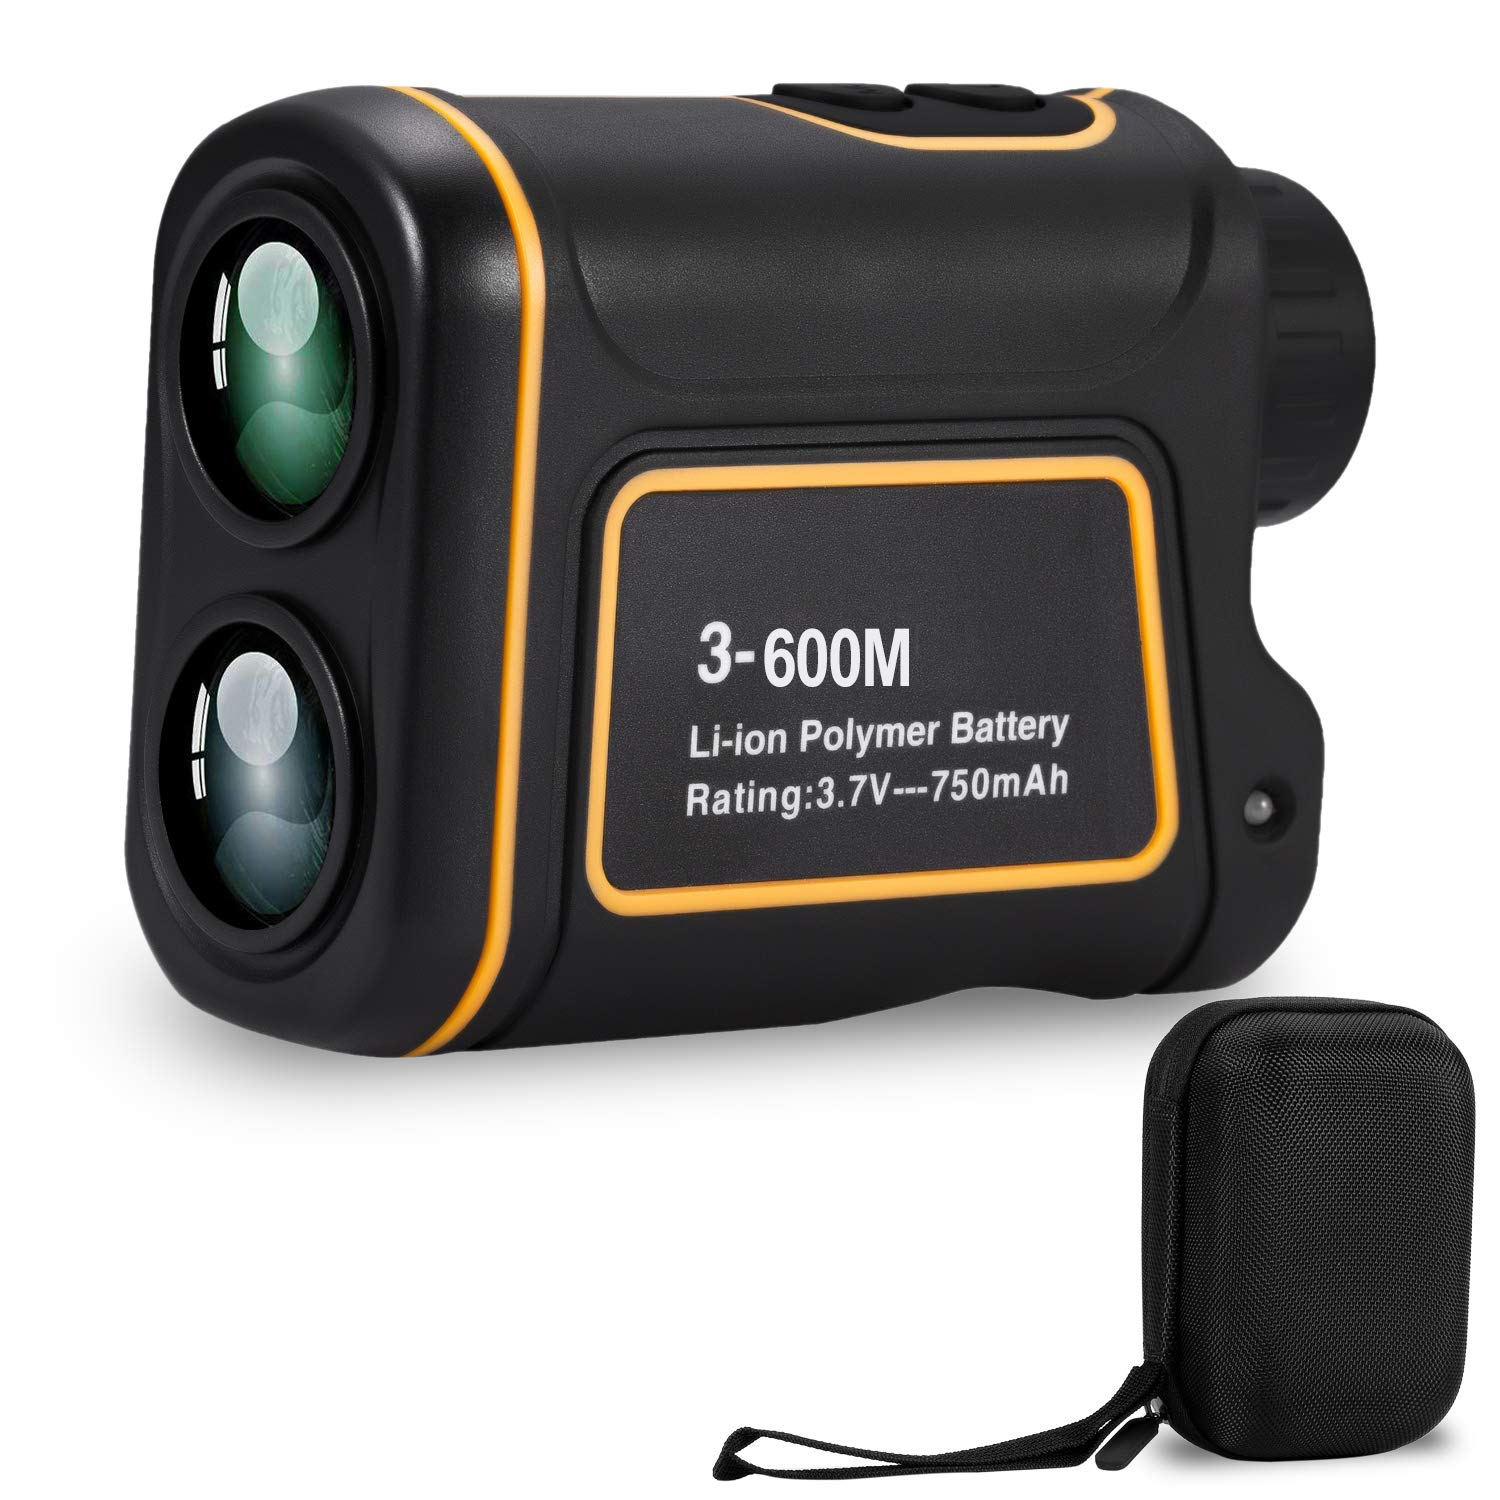 Deeteck Compact Golf Rangefinder,6X Rechargeable Laser Hunting Range Finder,600 Yards Accurate Distance Finder with FMC Optics Clear View,Support Scan,Speed,Angle,Flag Lock,Vertical Horizontal